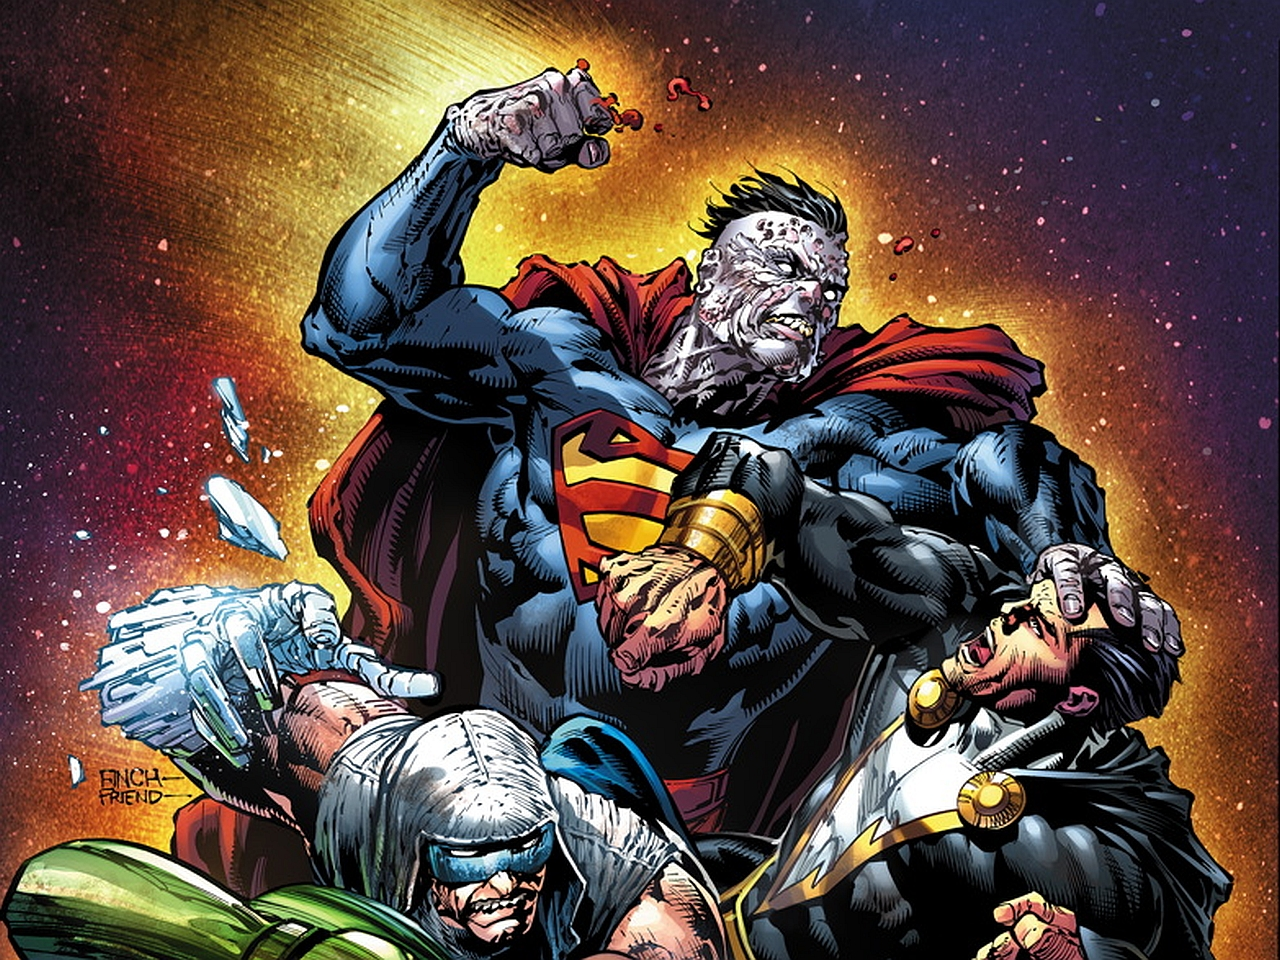 Forever Evil Computer Wallpapers Desktop Backgrounds 1280x960 ID 1280x960